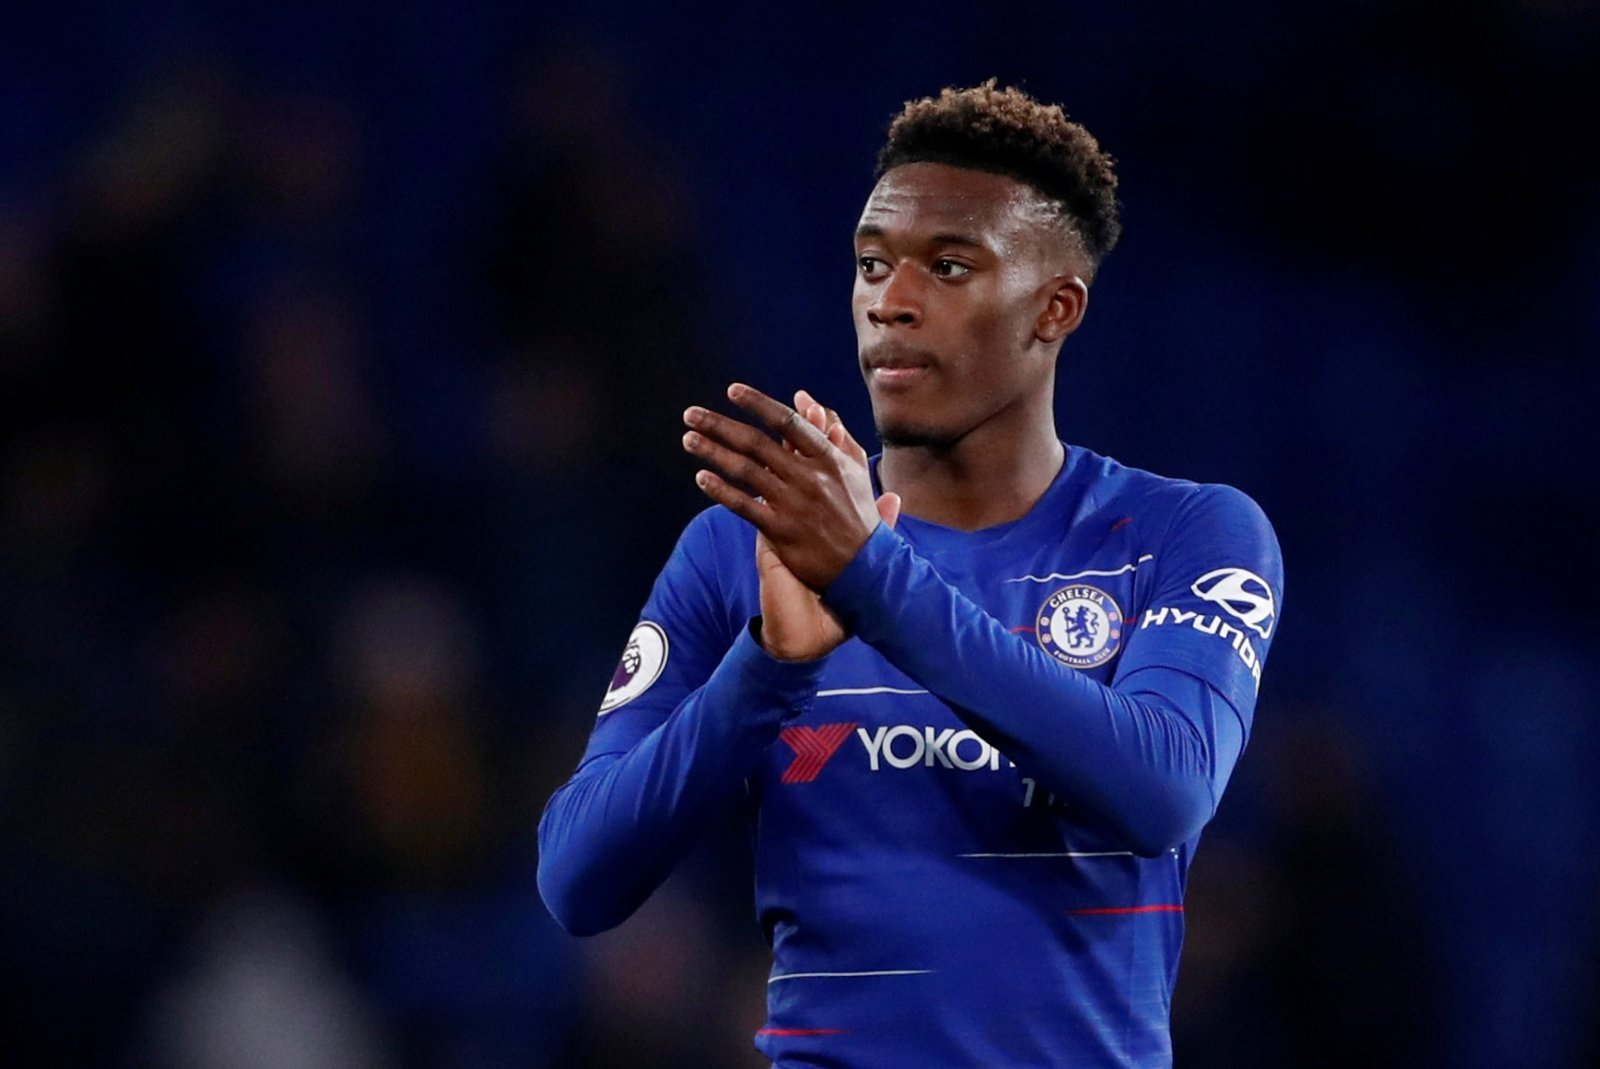 Chelsea's Callum Hudson-Odoi applauds fans after the Brighton match, April 2019